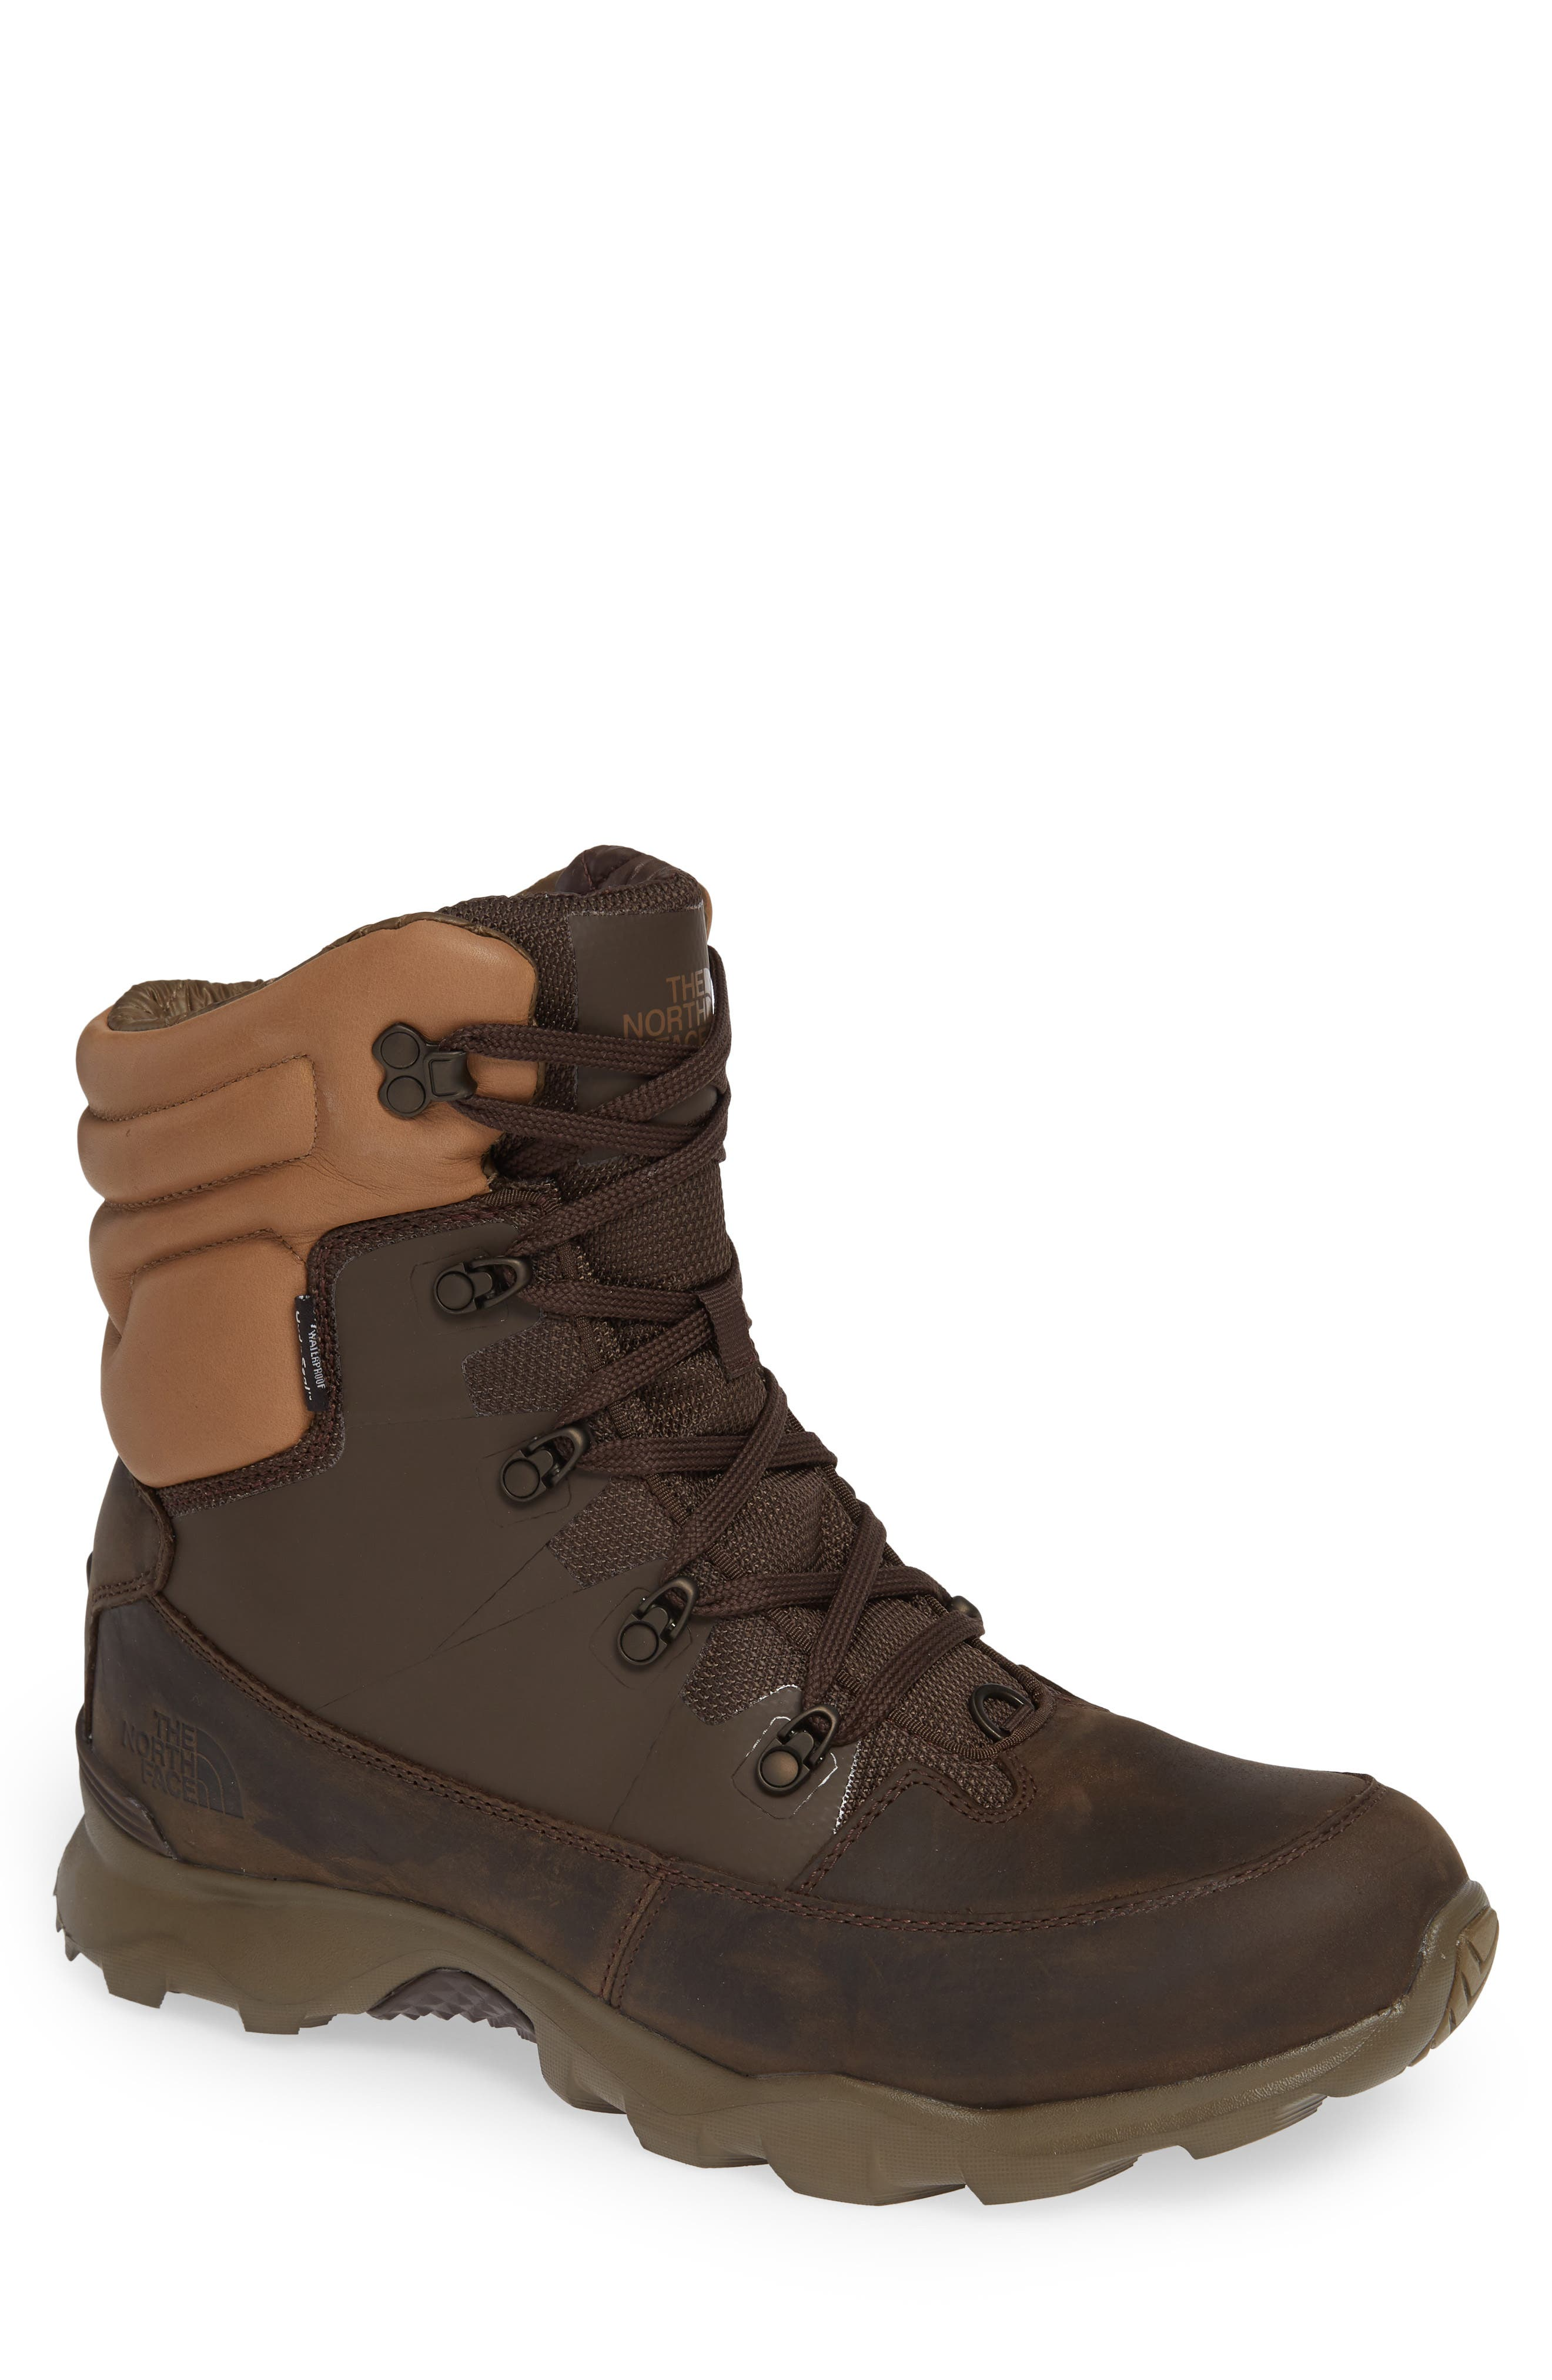 THE NORTH FACE ThermoBall Lifty Snow Waterproof Boot, Main, color, CHOCOLATE BROWN/ CARGO KHAKI